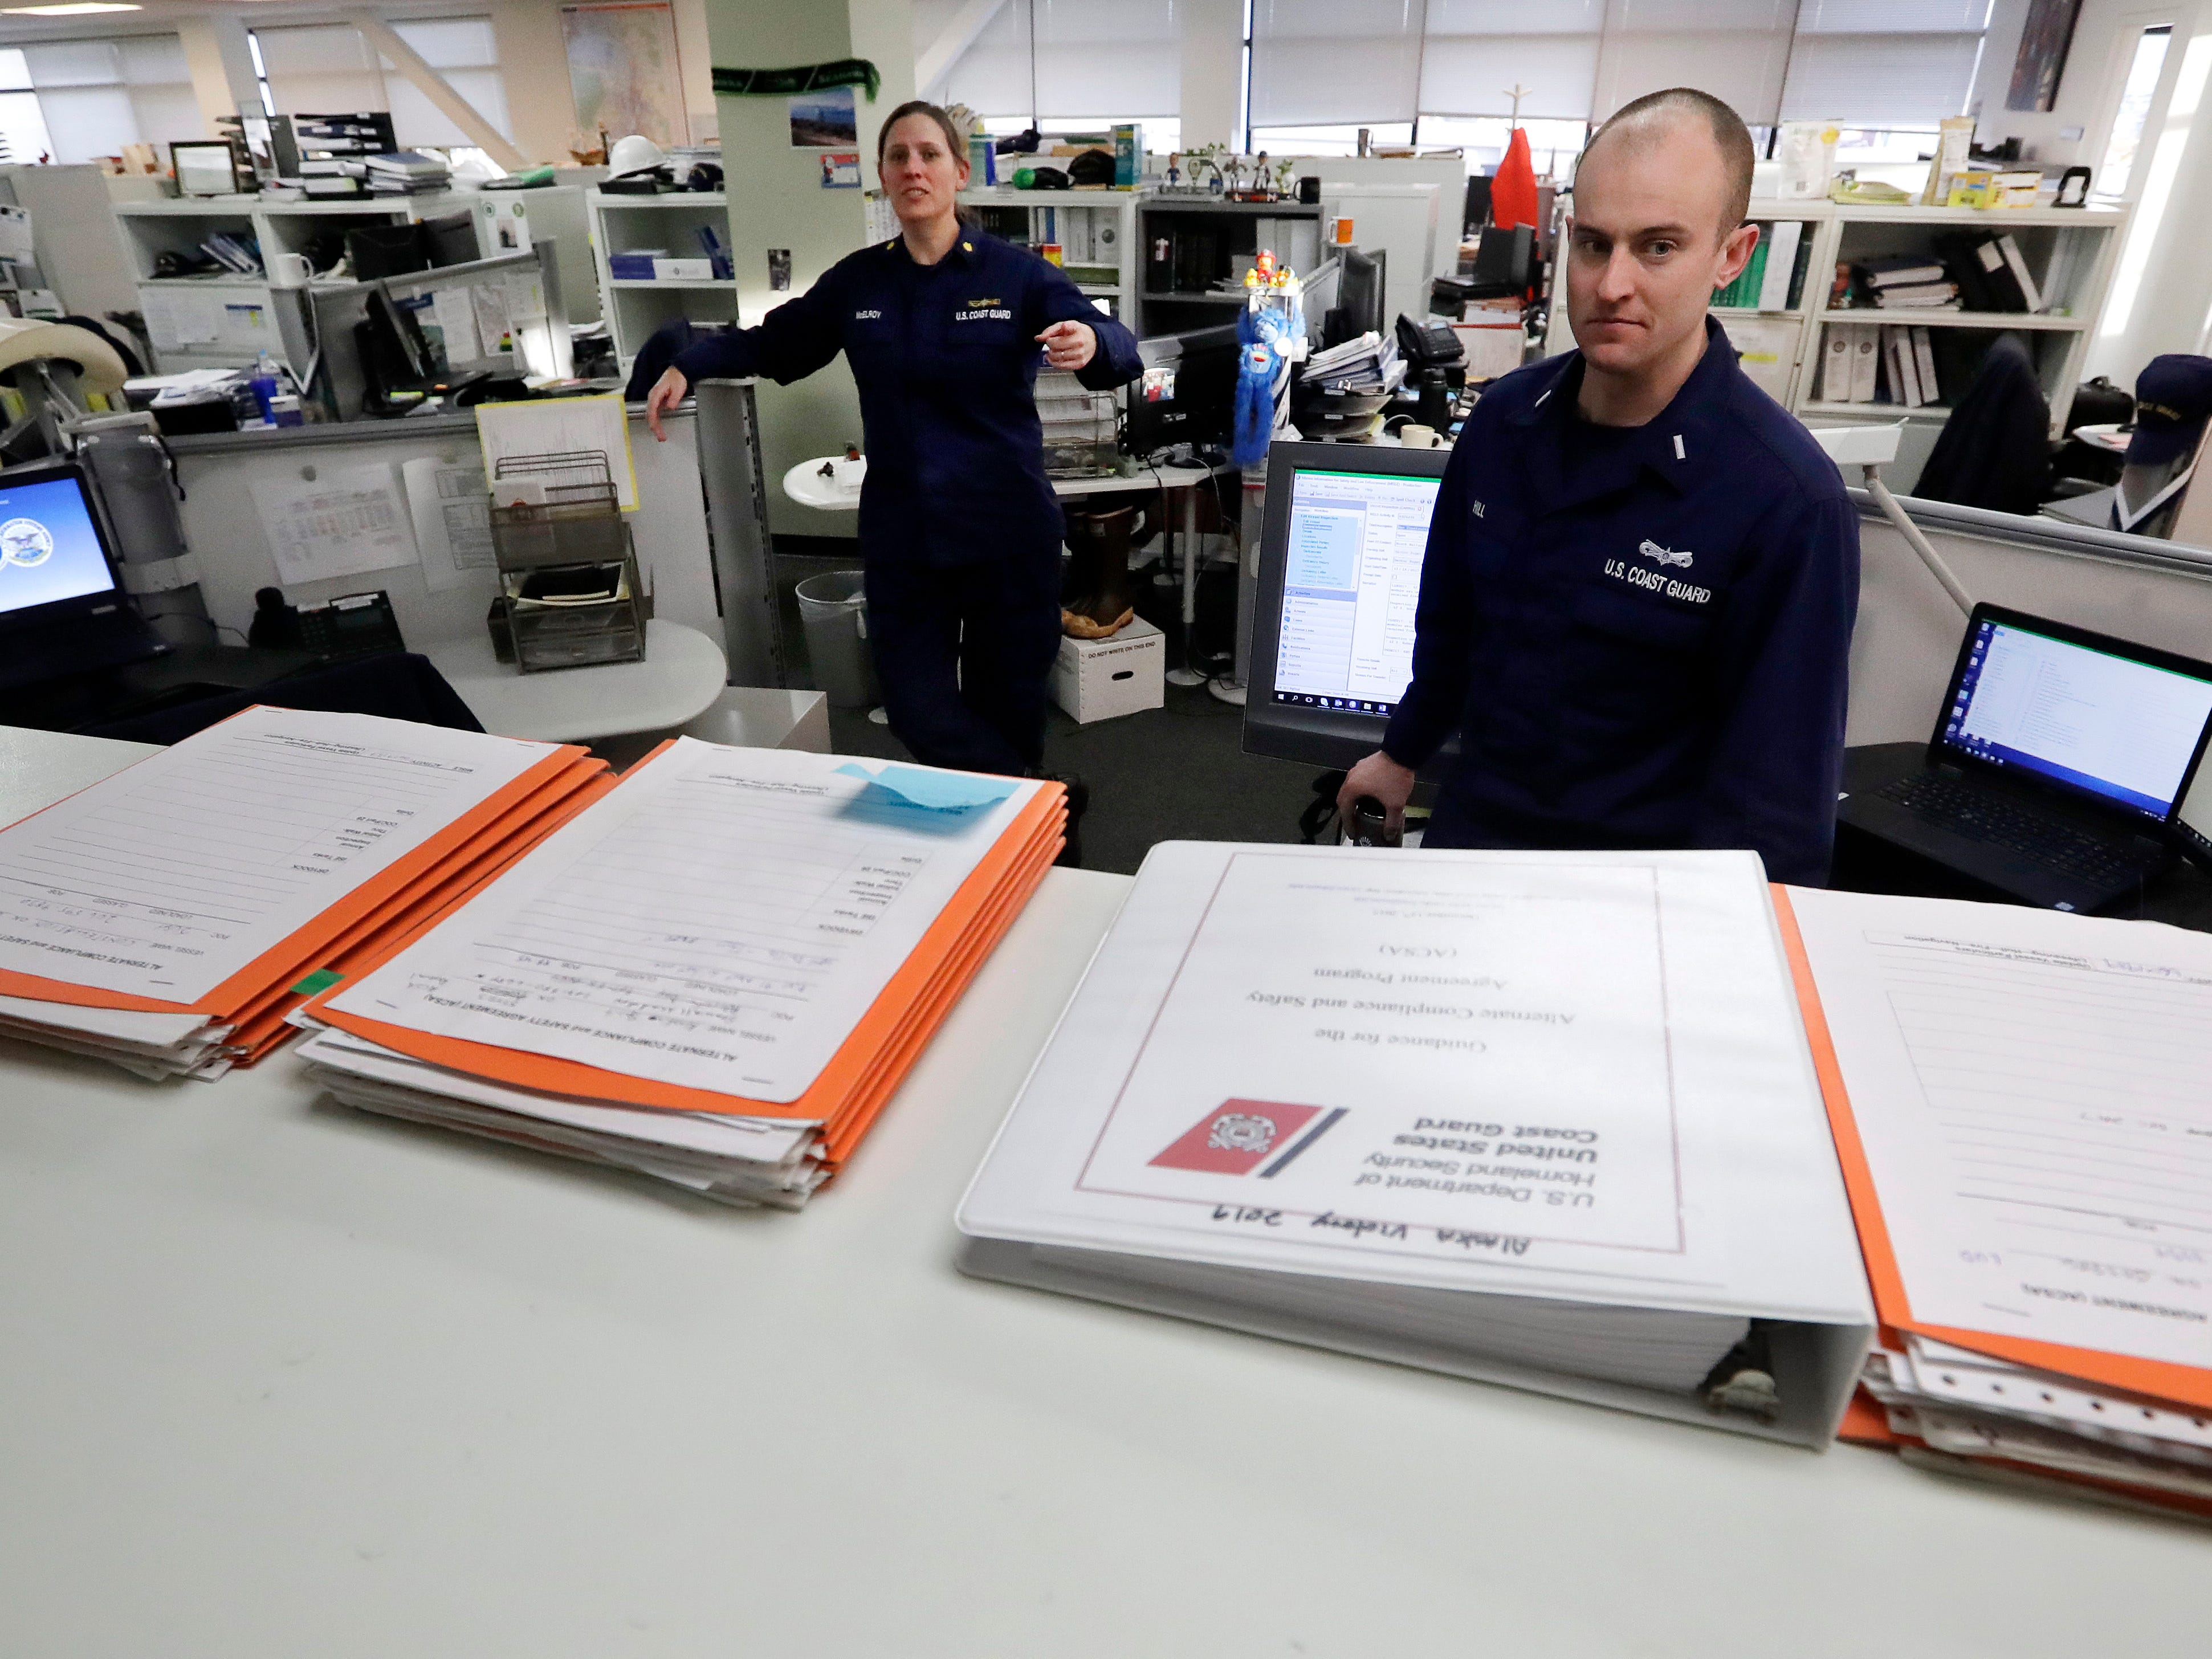 U.S. Coast Guard Lt. Cmdr. Amy McElroy, left, and Lt. j.g. Sean Hill, who both missed a paycheck a day earlier during the partial government shutdown, talk about the stacks of fishing fleet inspections backing-up in the marine inspection office at Sector Puget Sound base Wednesday, Jan. 16, 2019, in Seattle. The four civilian employees who normally handle the paperwork have been furloughed, leaving it to Hill to complete, along with his other duties. The Coast Guard is part of the U.S. Department of Homeland Security, which is unfunded during the shutdown, now in its fourth week. (AP Photo/Elaine Thompson) ORG XMIT: WAET108